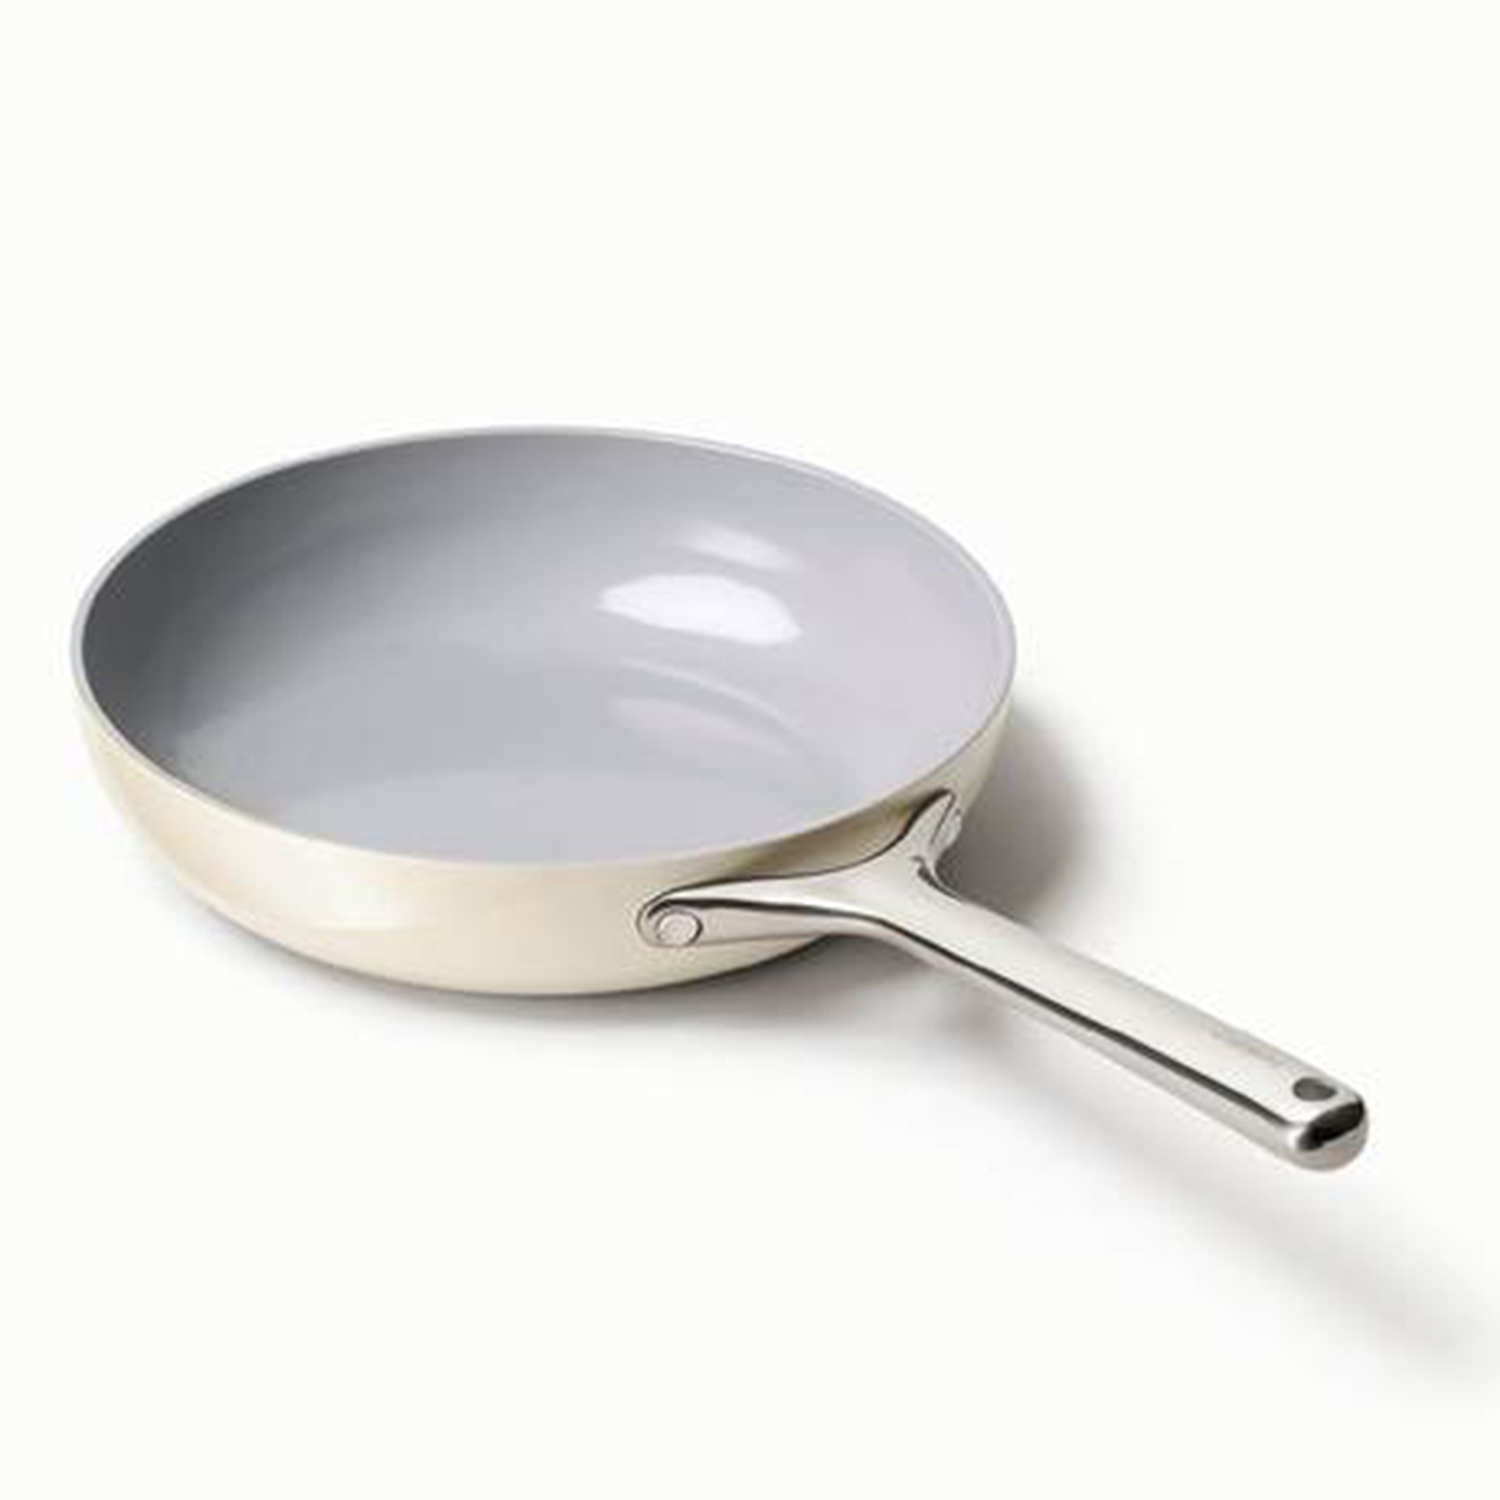 Stainless Clad Frying Pan